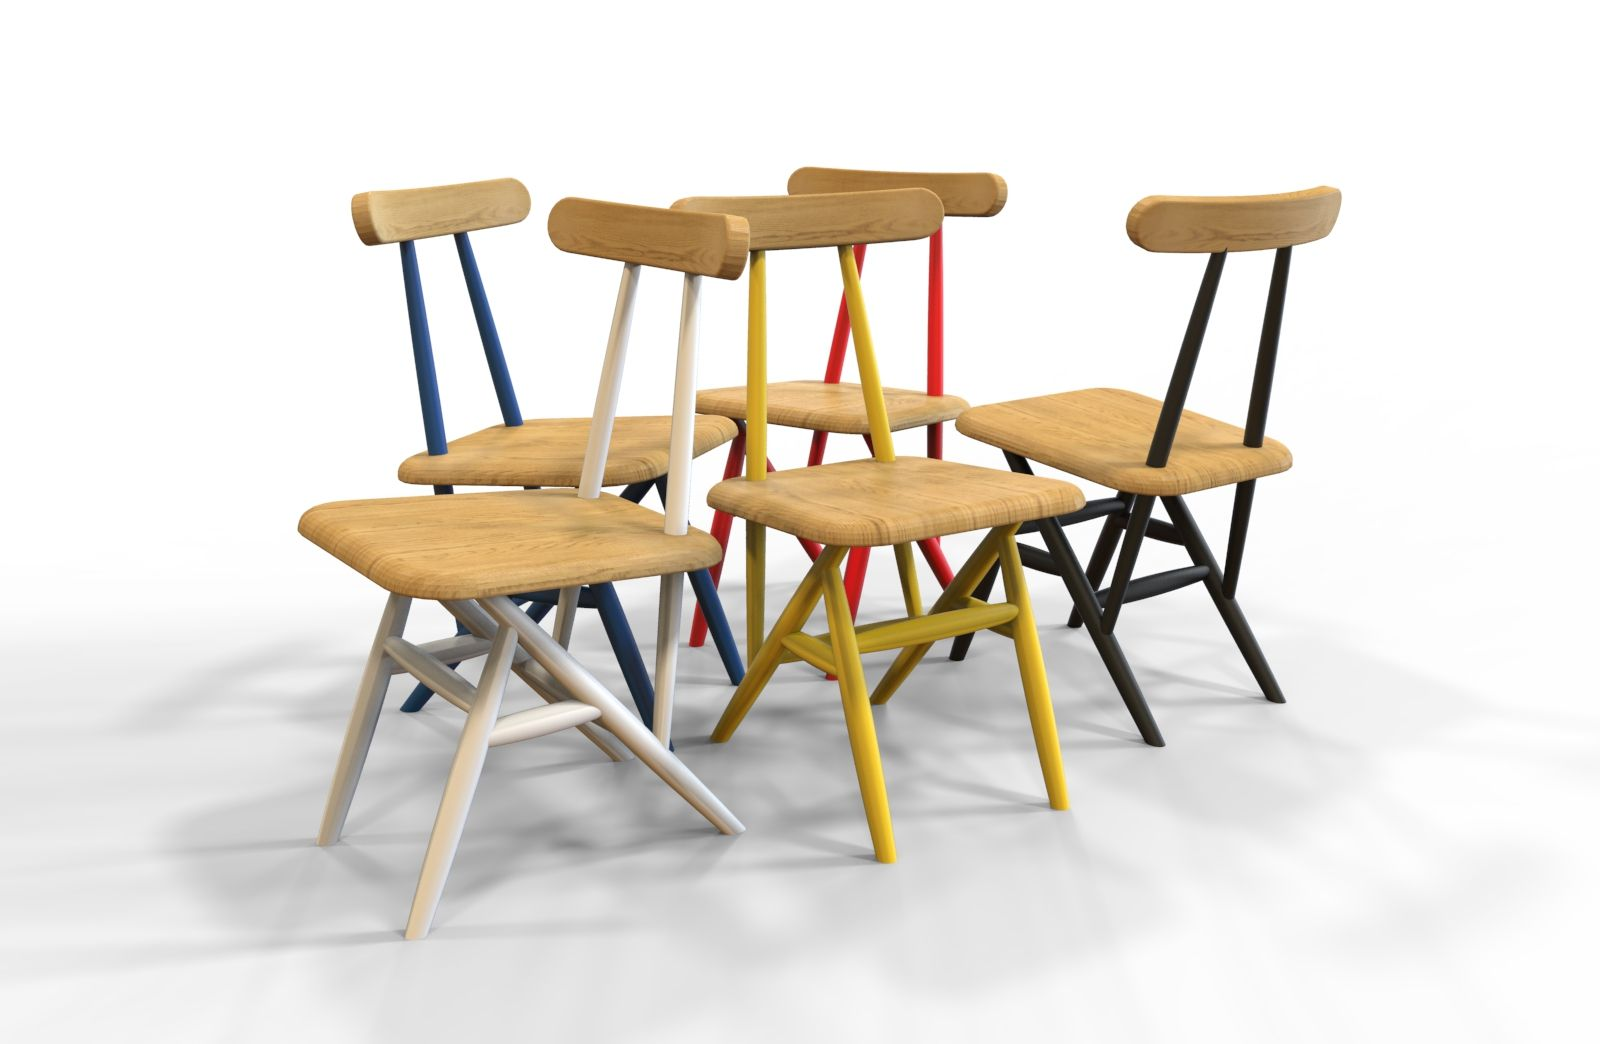 Surprising Many Color Variations In This Scandinavian Modern Design Pdpeps Interior Chair Design Pdpepsorg